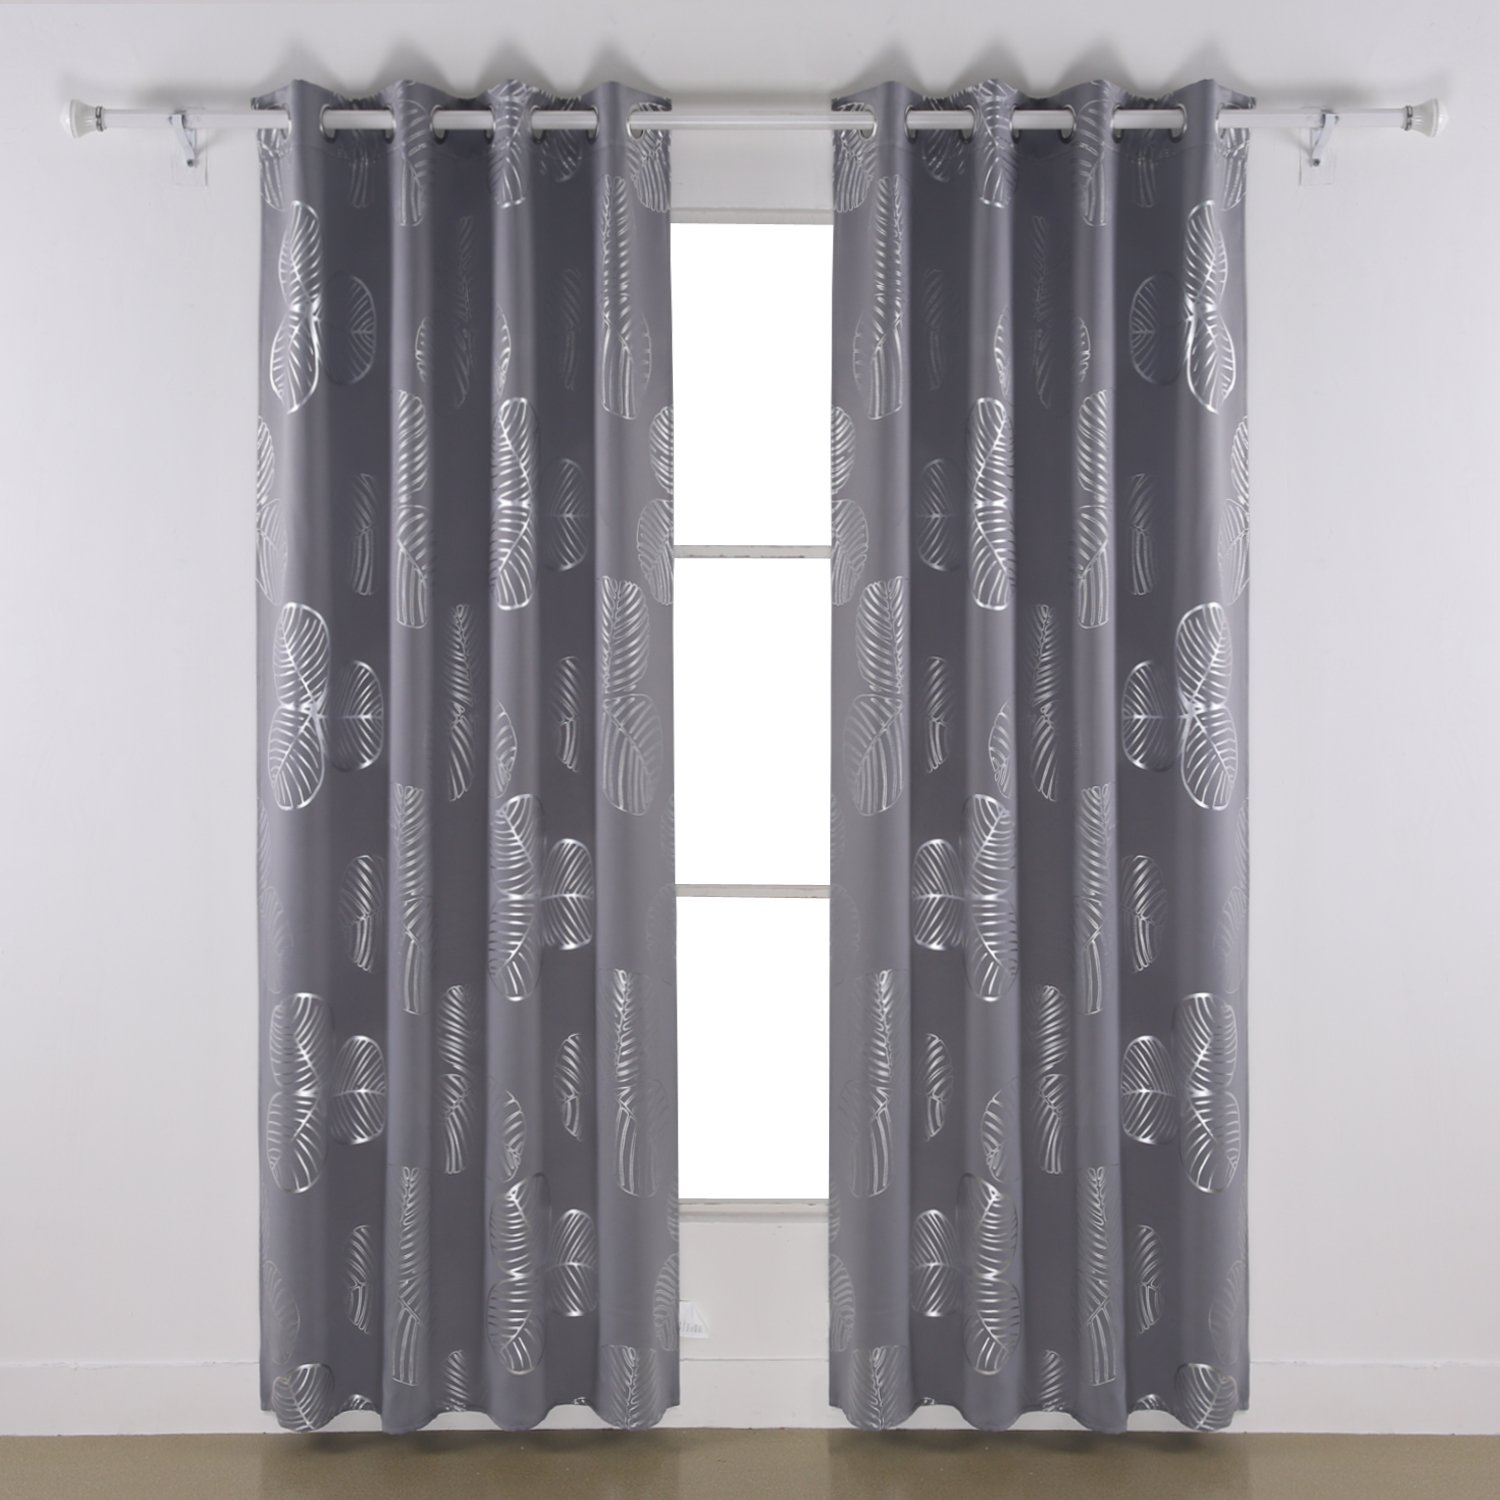 Deconovo Curtains Grey Blackout Curtains Delicate Goat Willow Leaf Printed Room Darkening Curtains Light Gray